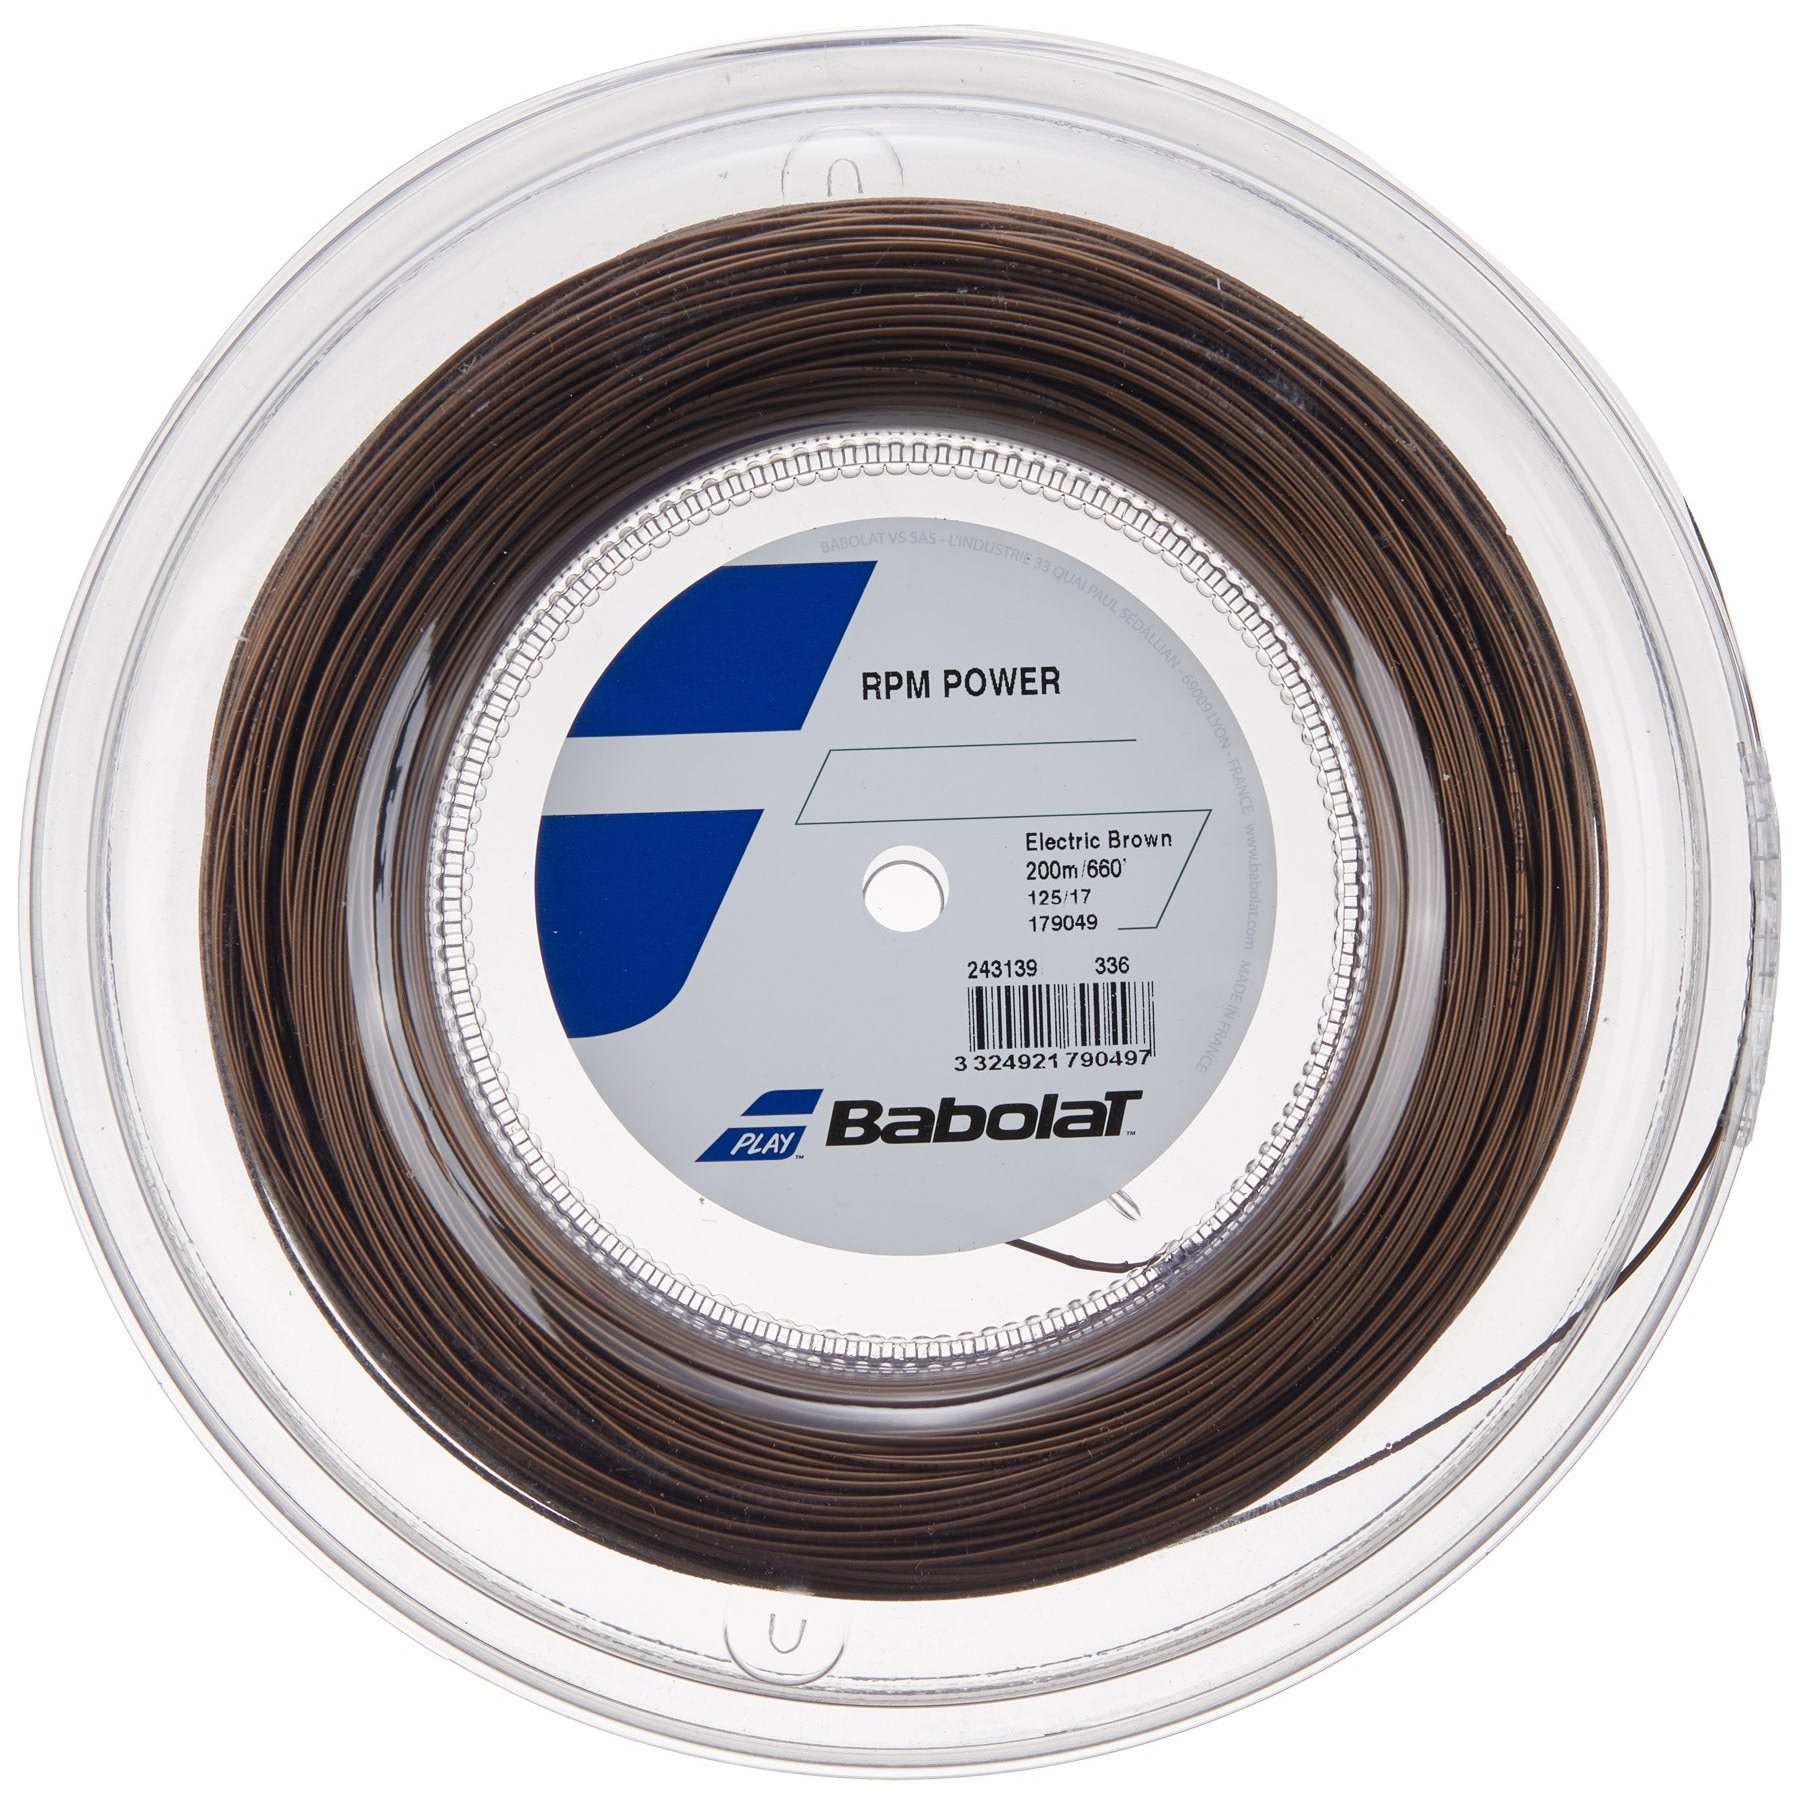 Babolat RPM Power 17 Reel 200m Brown String